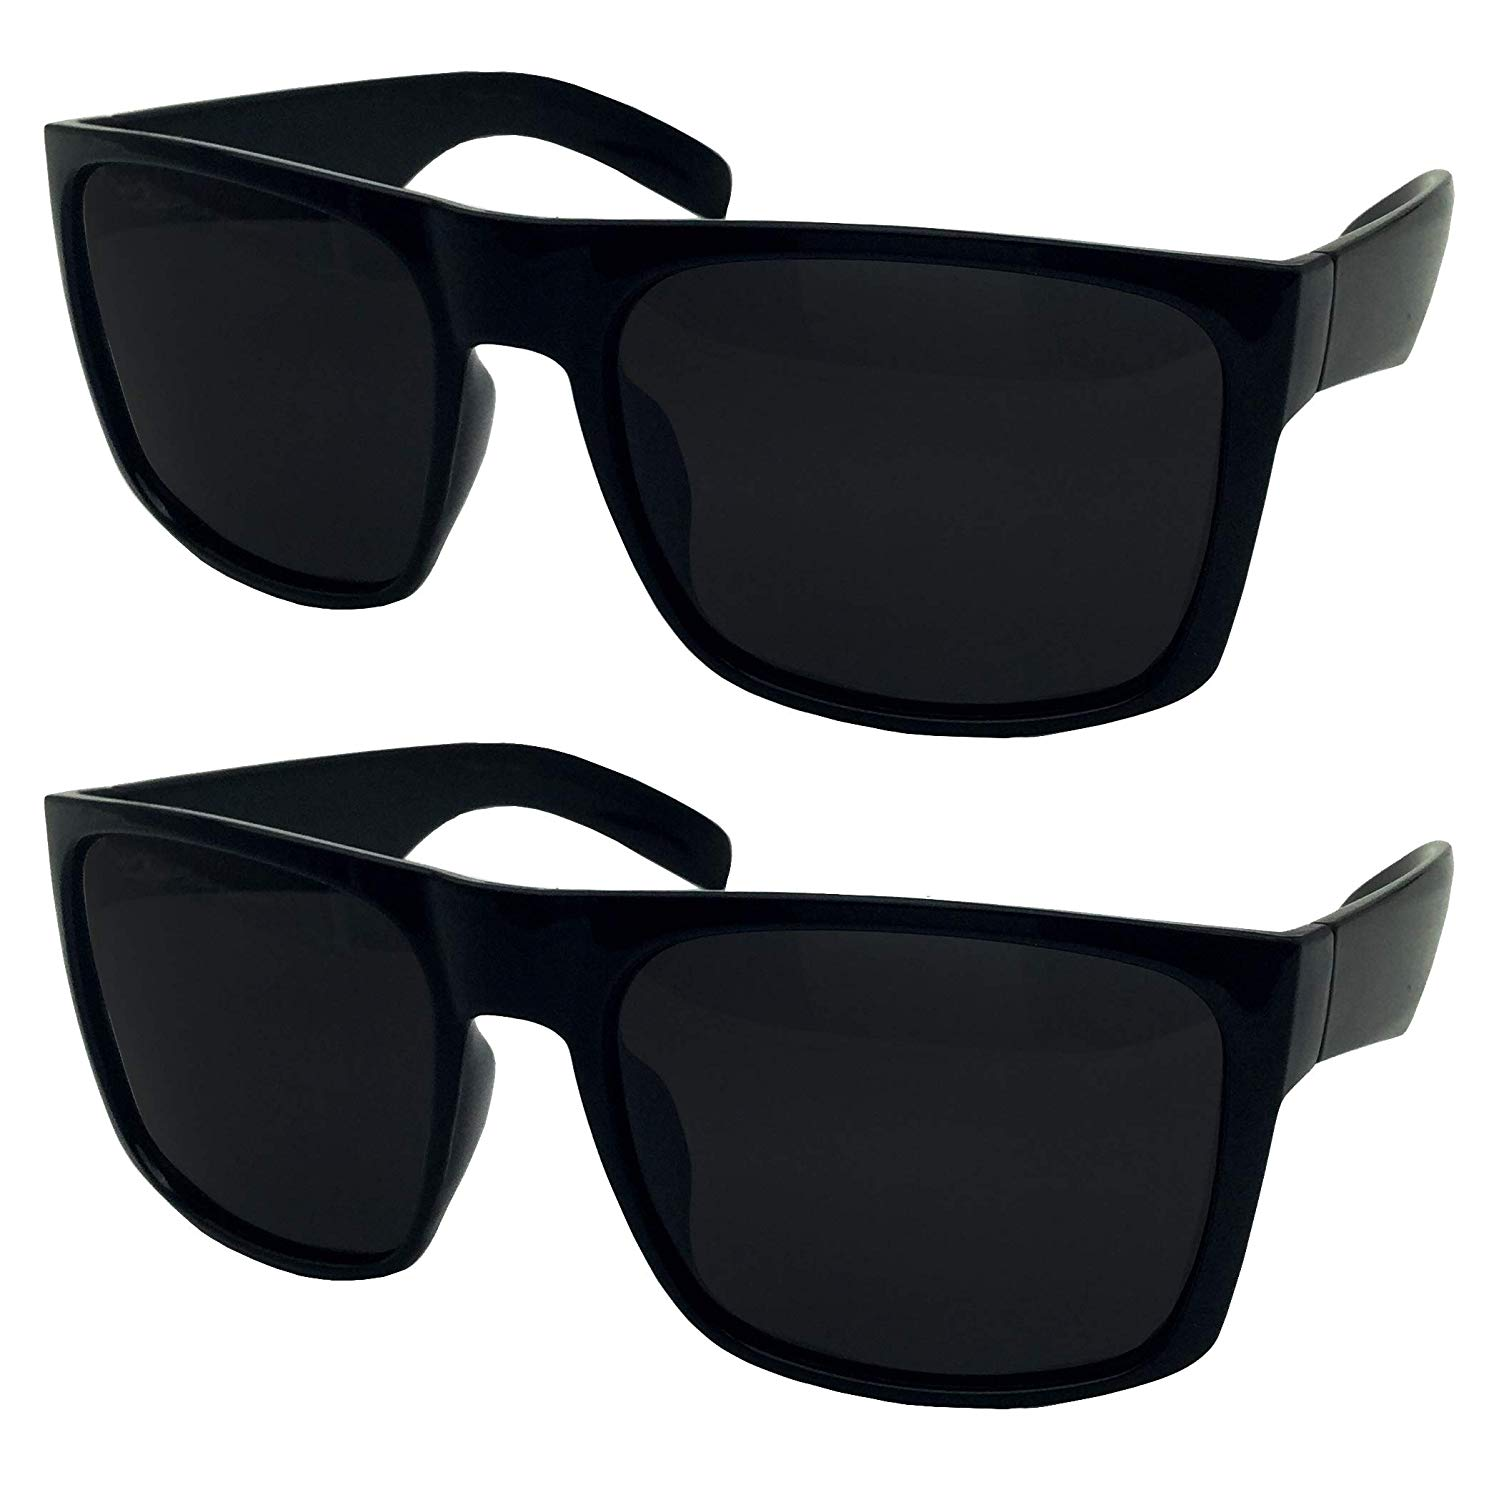 4c65b92354a Get Quotations · 2 Pack XL Polarized Men s Big Wide Frame Sunglasses - Large  Head Fit